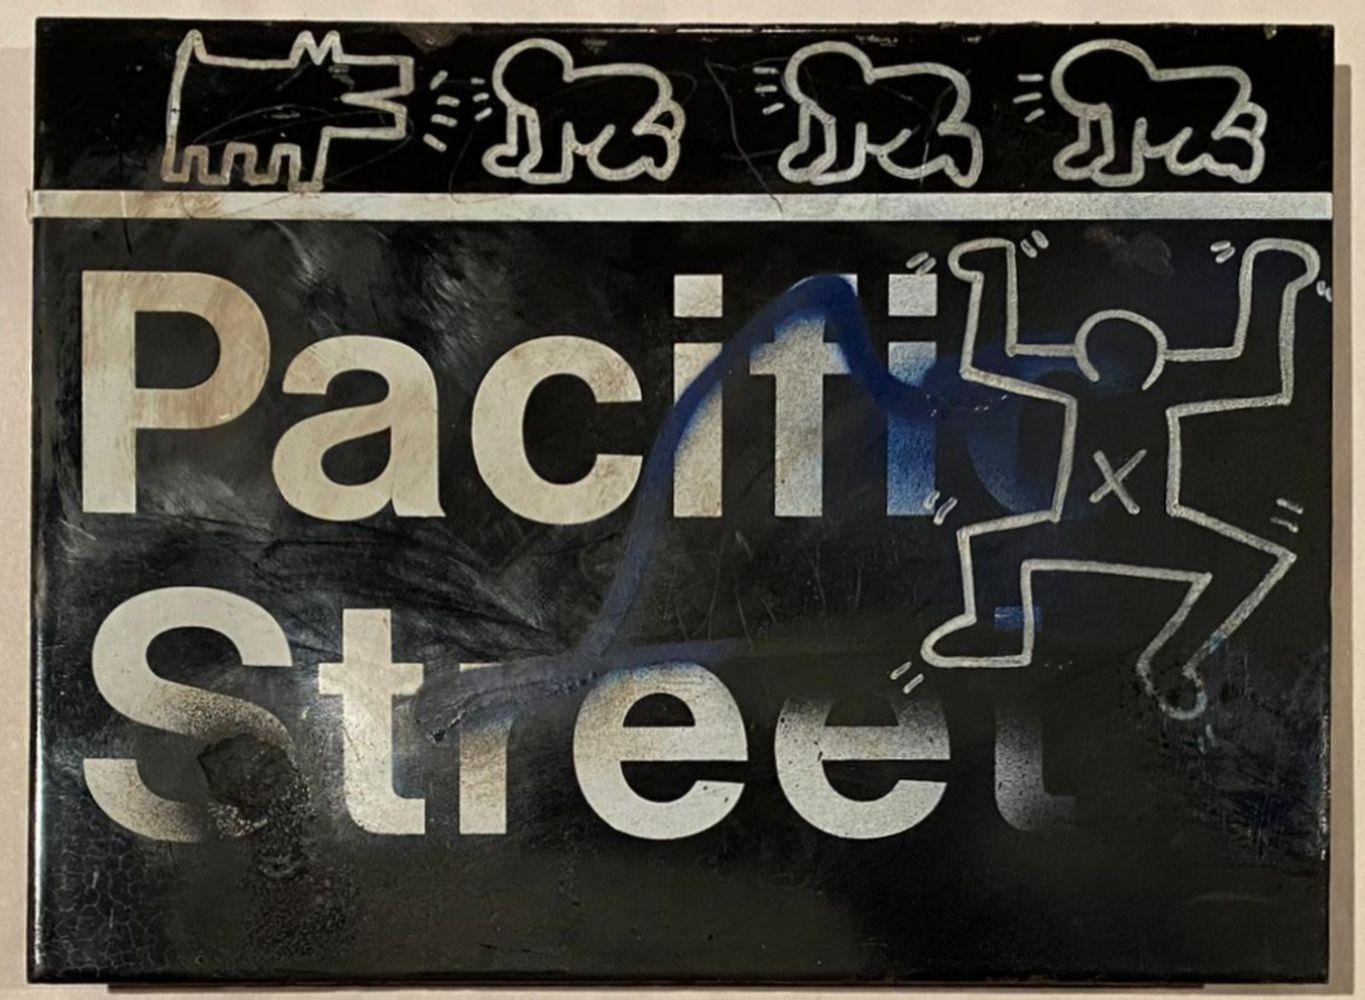 Keith Haring - Pacific Street